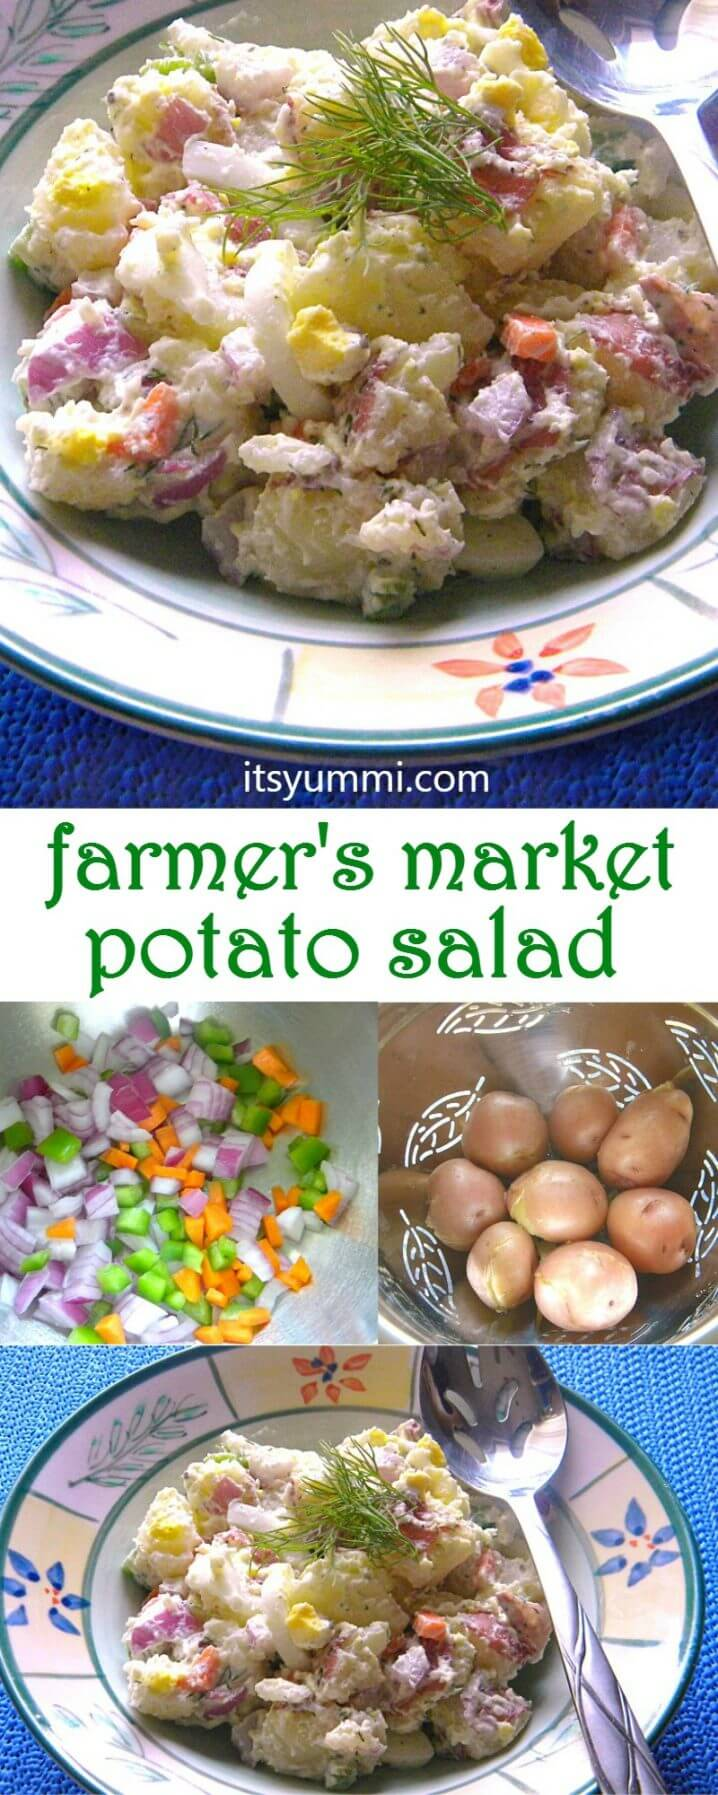 titled photo collage - farmer's market potato salad